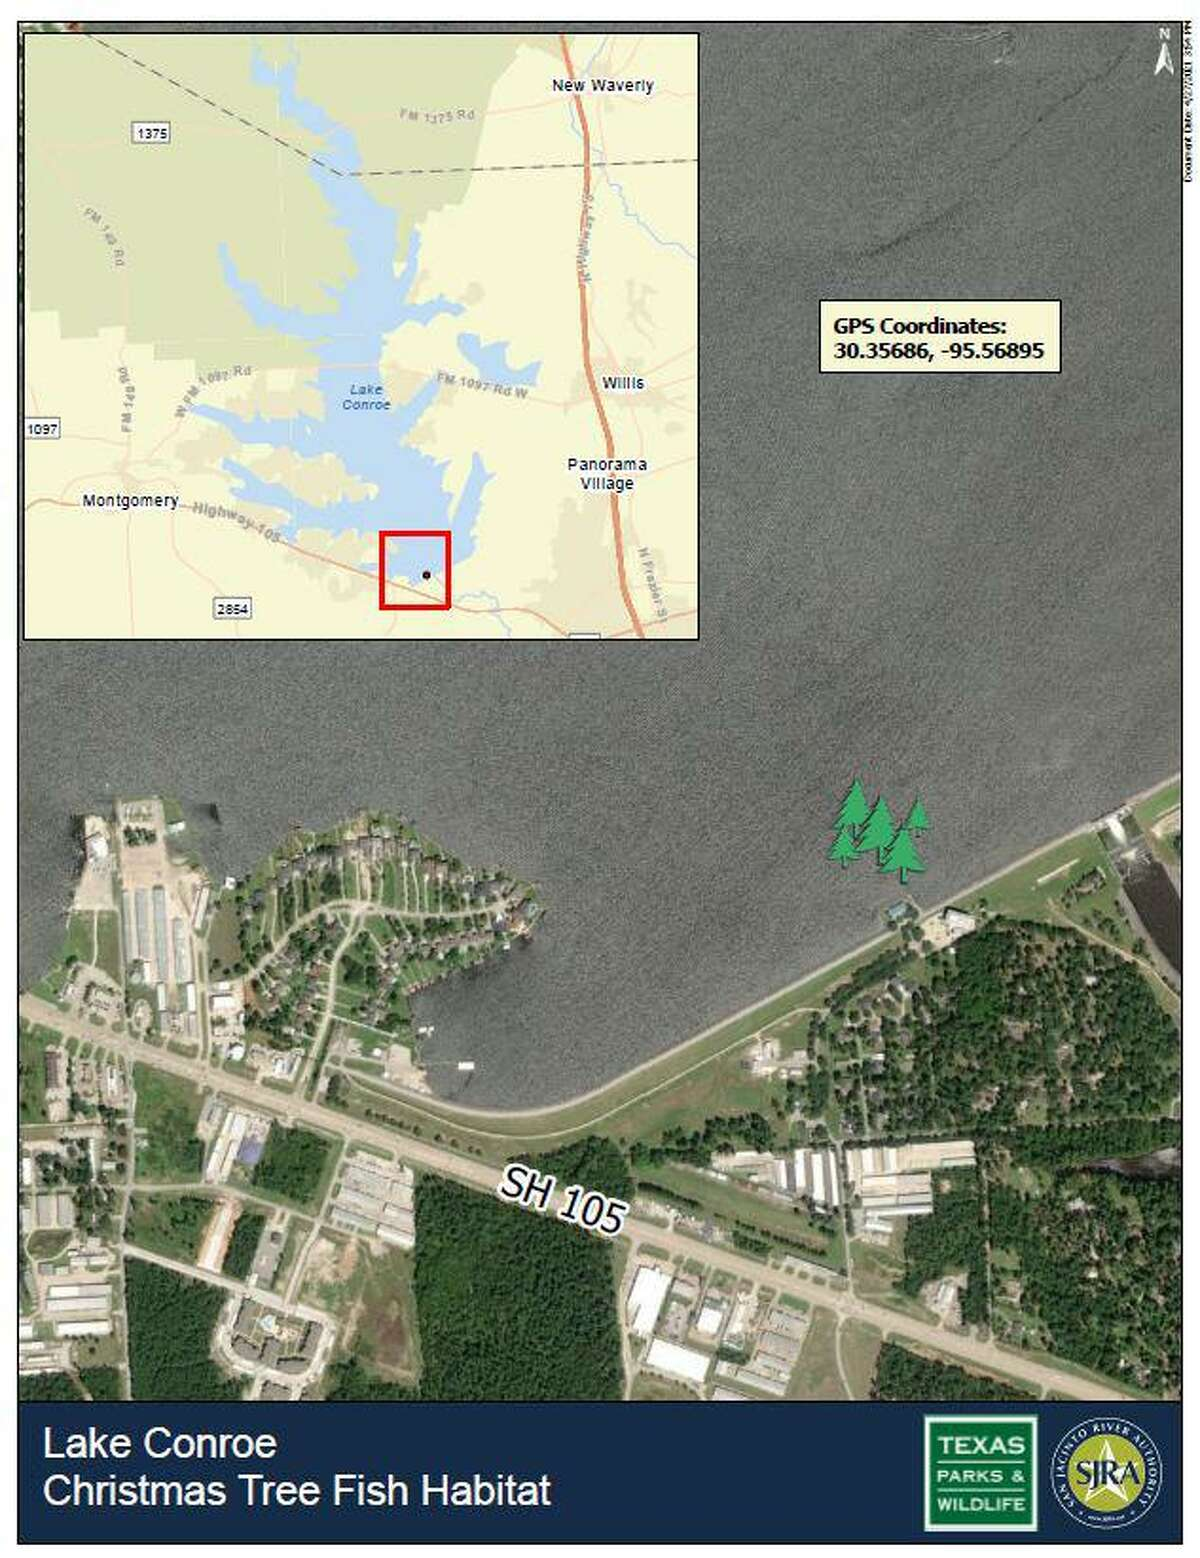 The San Jacinto River Authority and Texas Parks and Wildlife are using recycled Christmas trees, donated by residents through a Christmas Tree Drive, to create a fish habitat in Lake Conroe. The Christmas tree habitat is located at the GPS coordinates: 30.35686, -95.56895 in Lake Conroe. The trees are anchored using buoy anchors or cinder blocks.